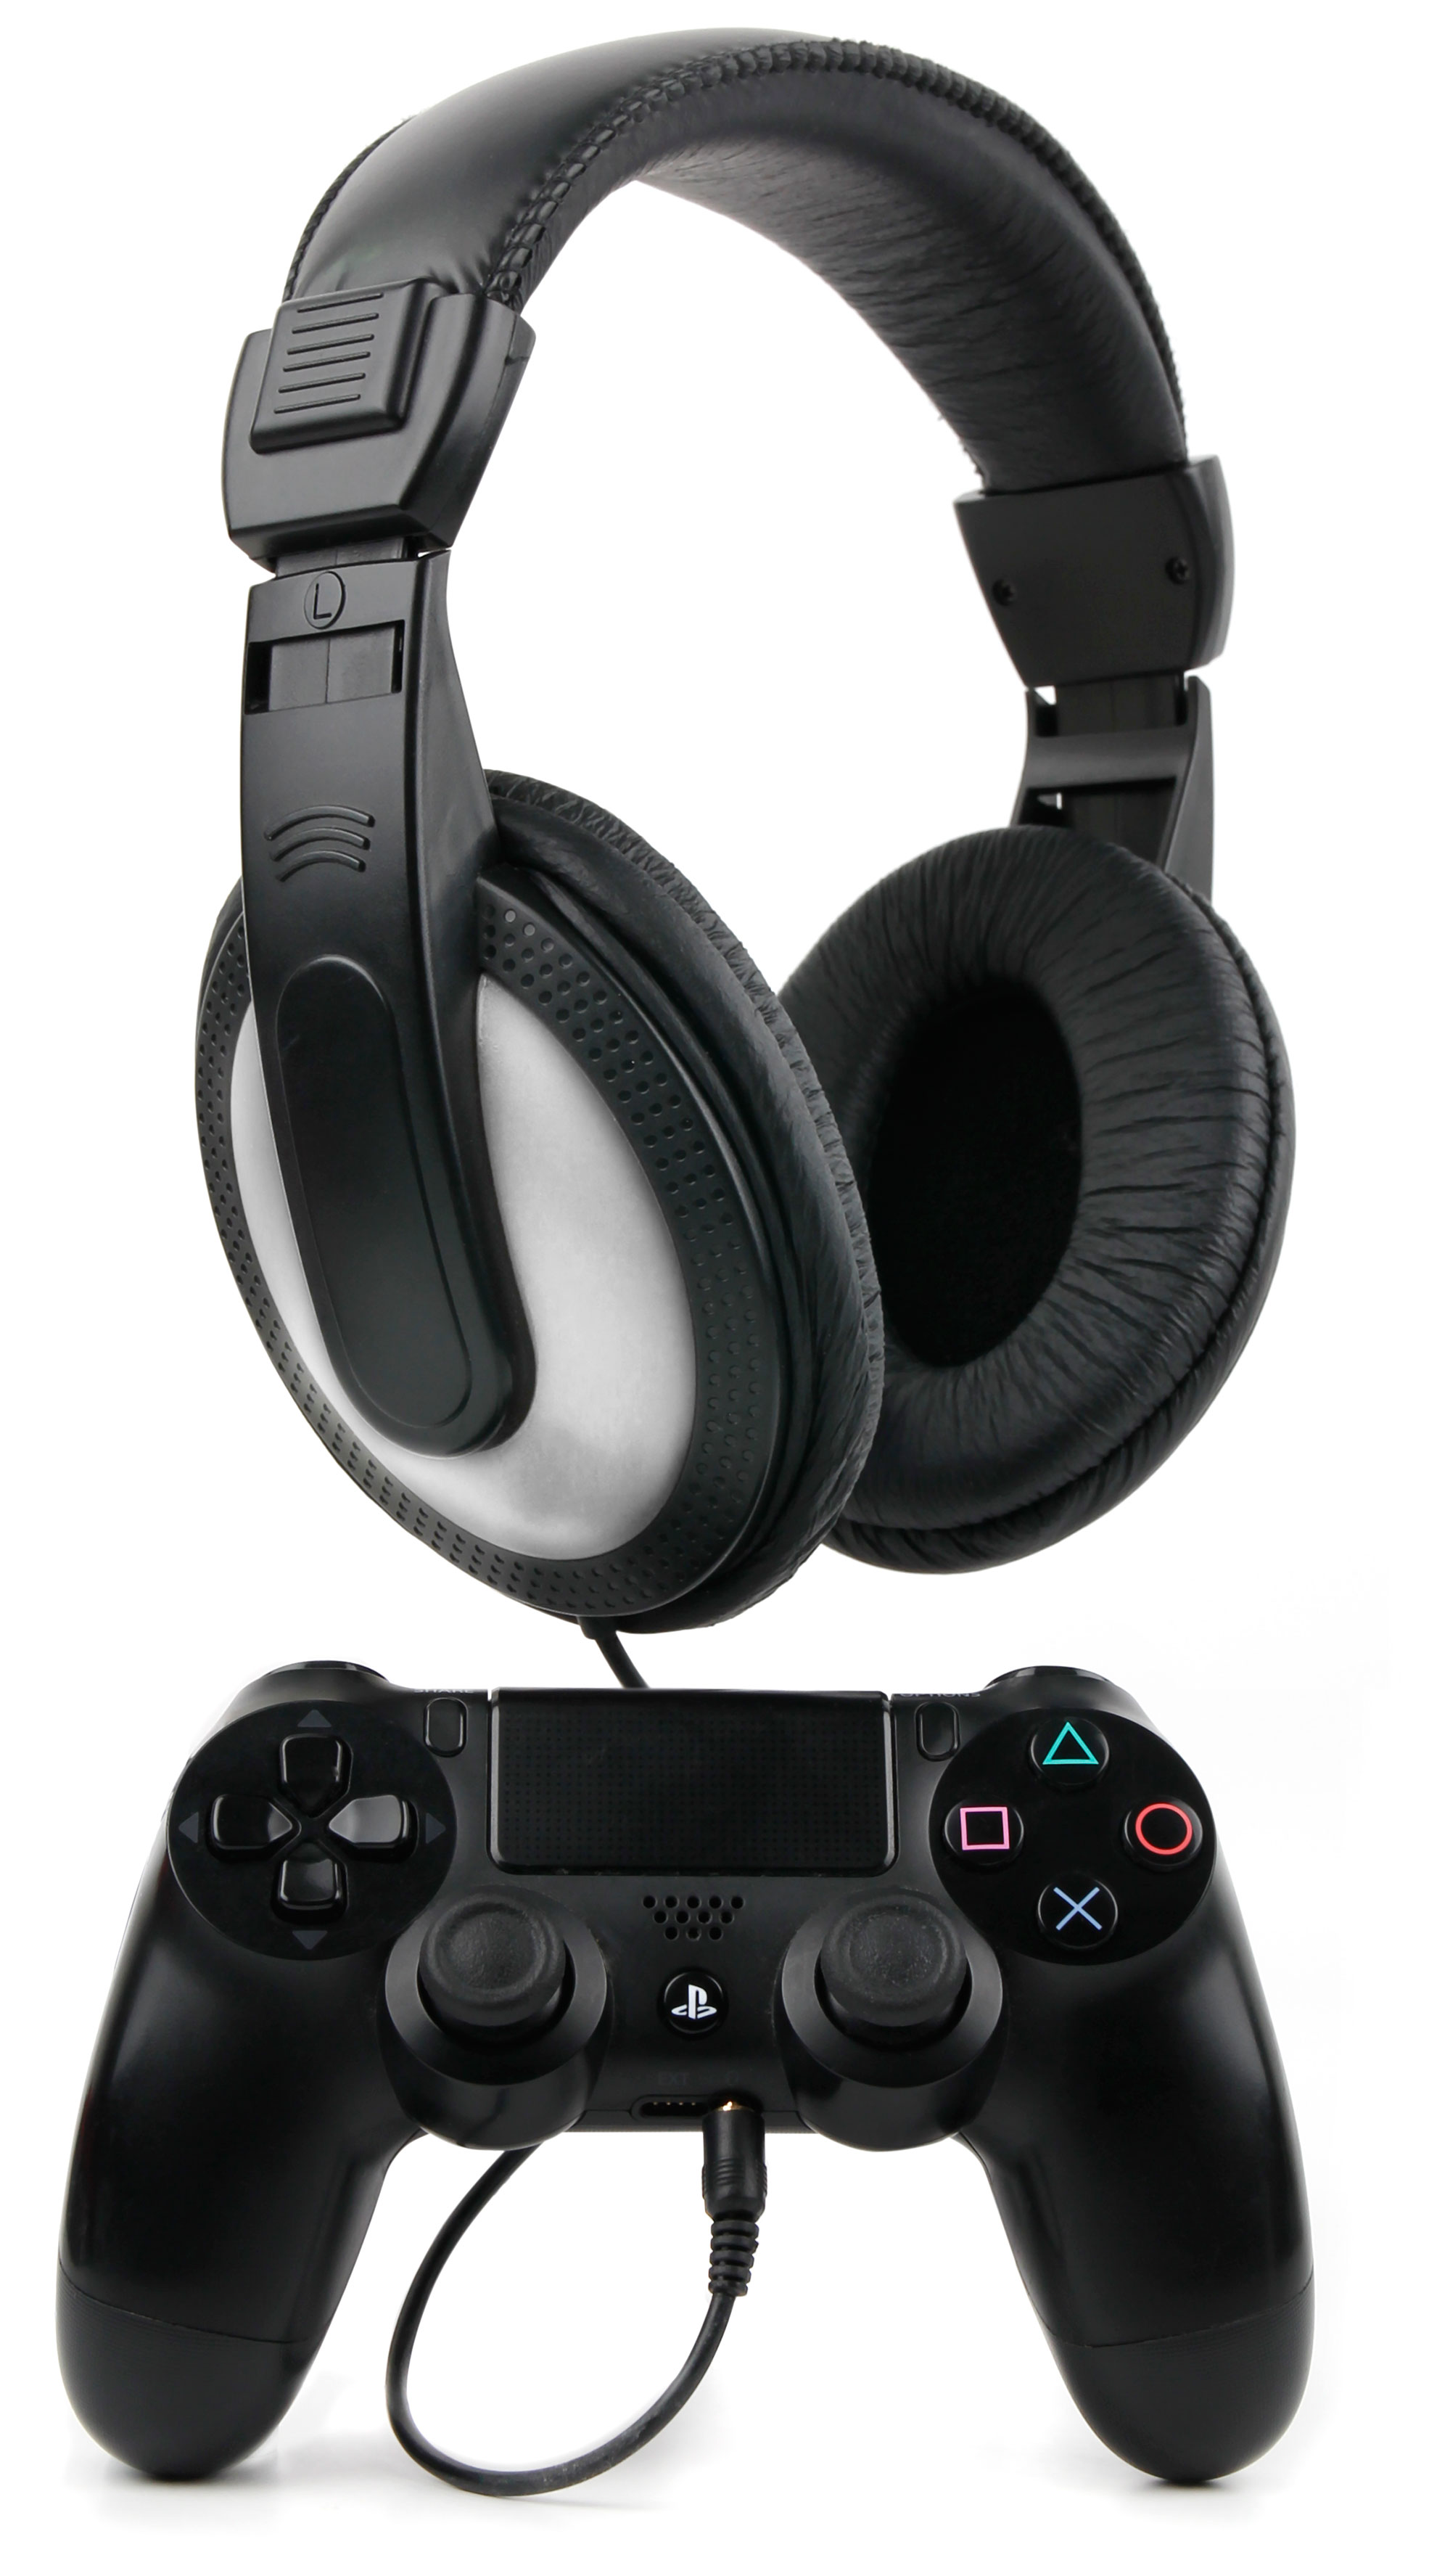 casque audio pour manette ps4 dual shock 4 sans fil sony playstation ebay. Black Bedroom Furniture Sets. Home Design Ideas